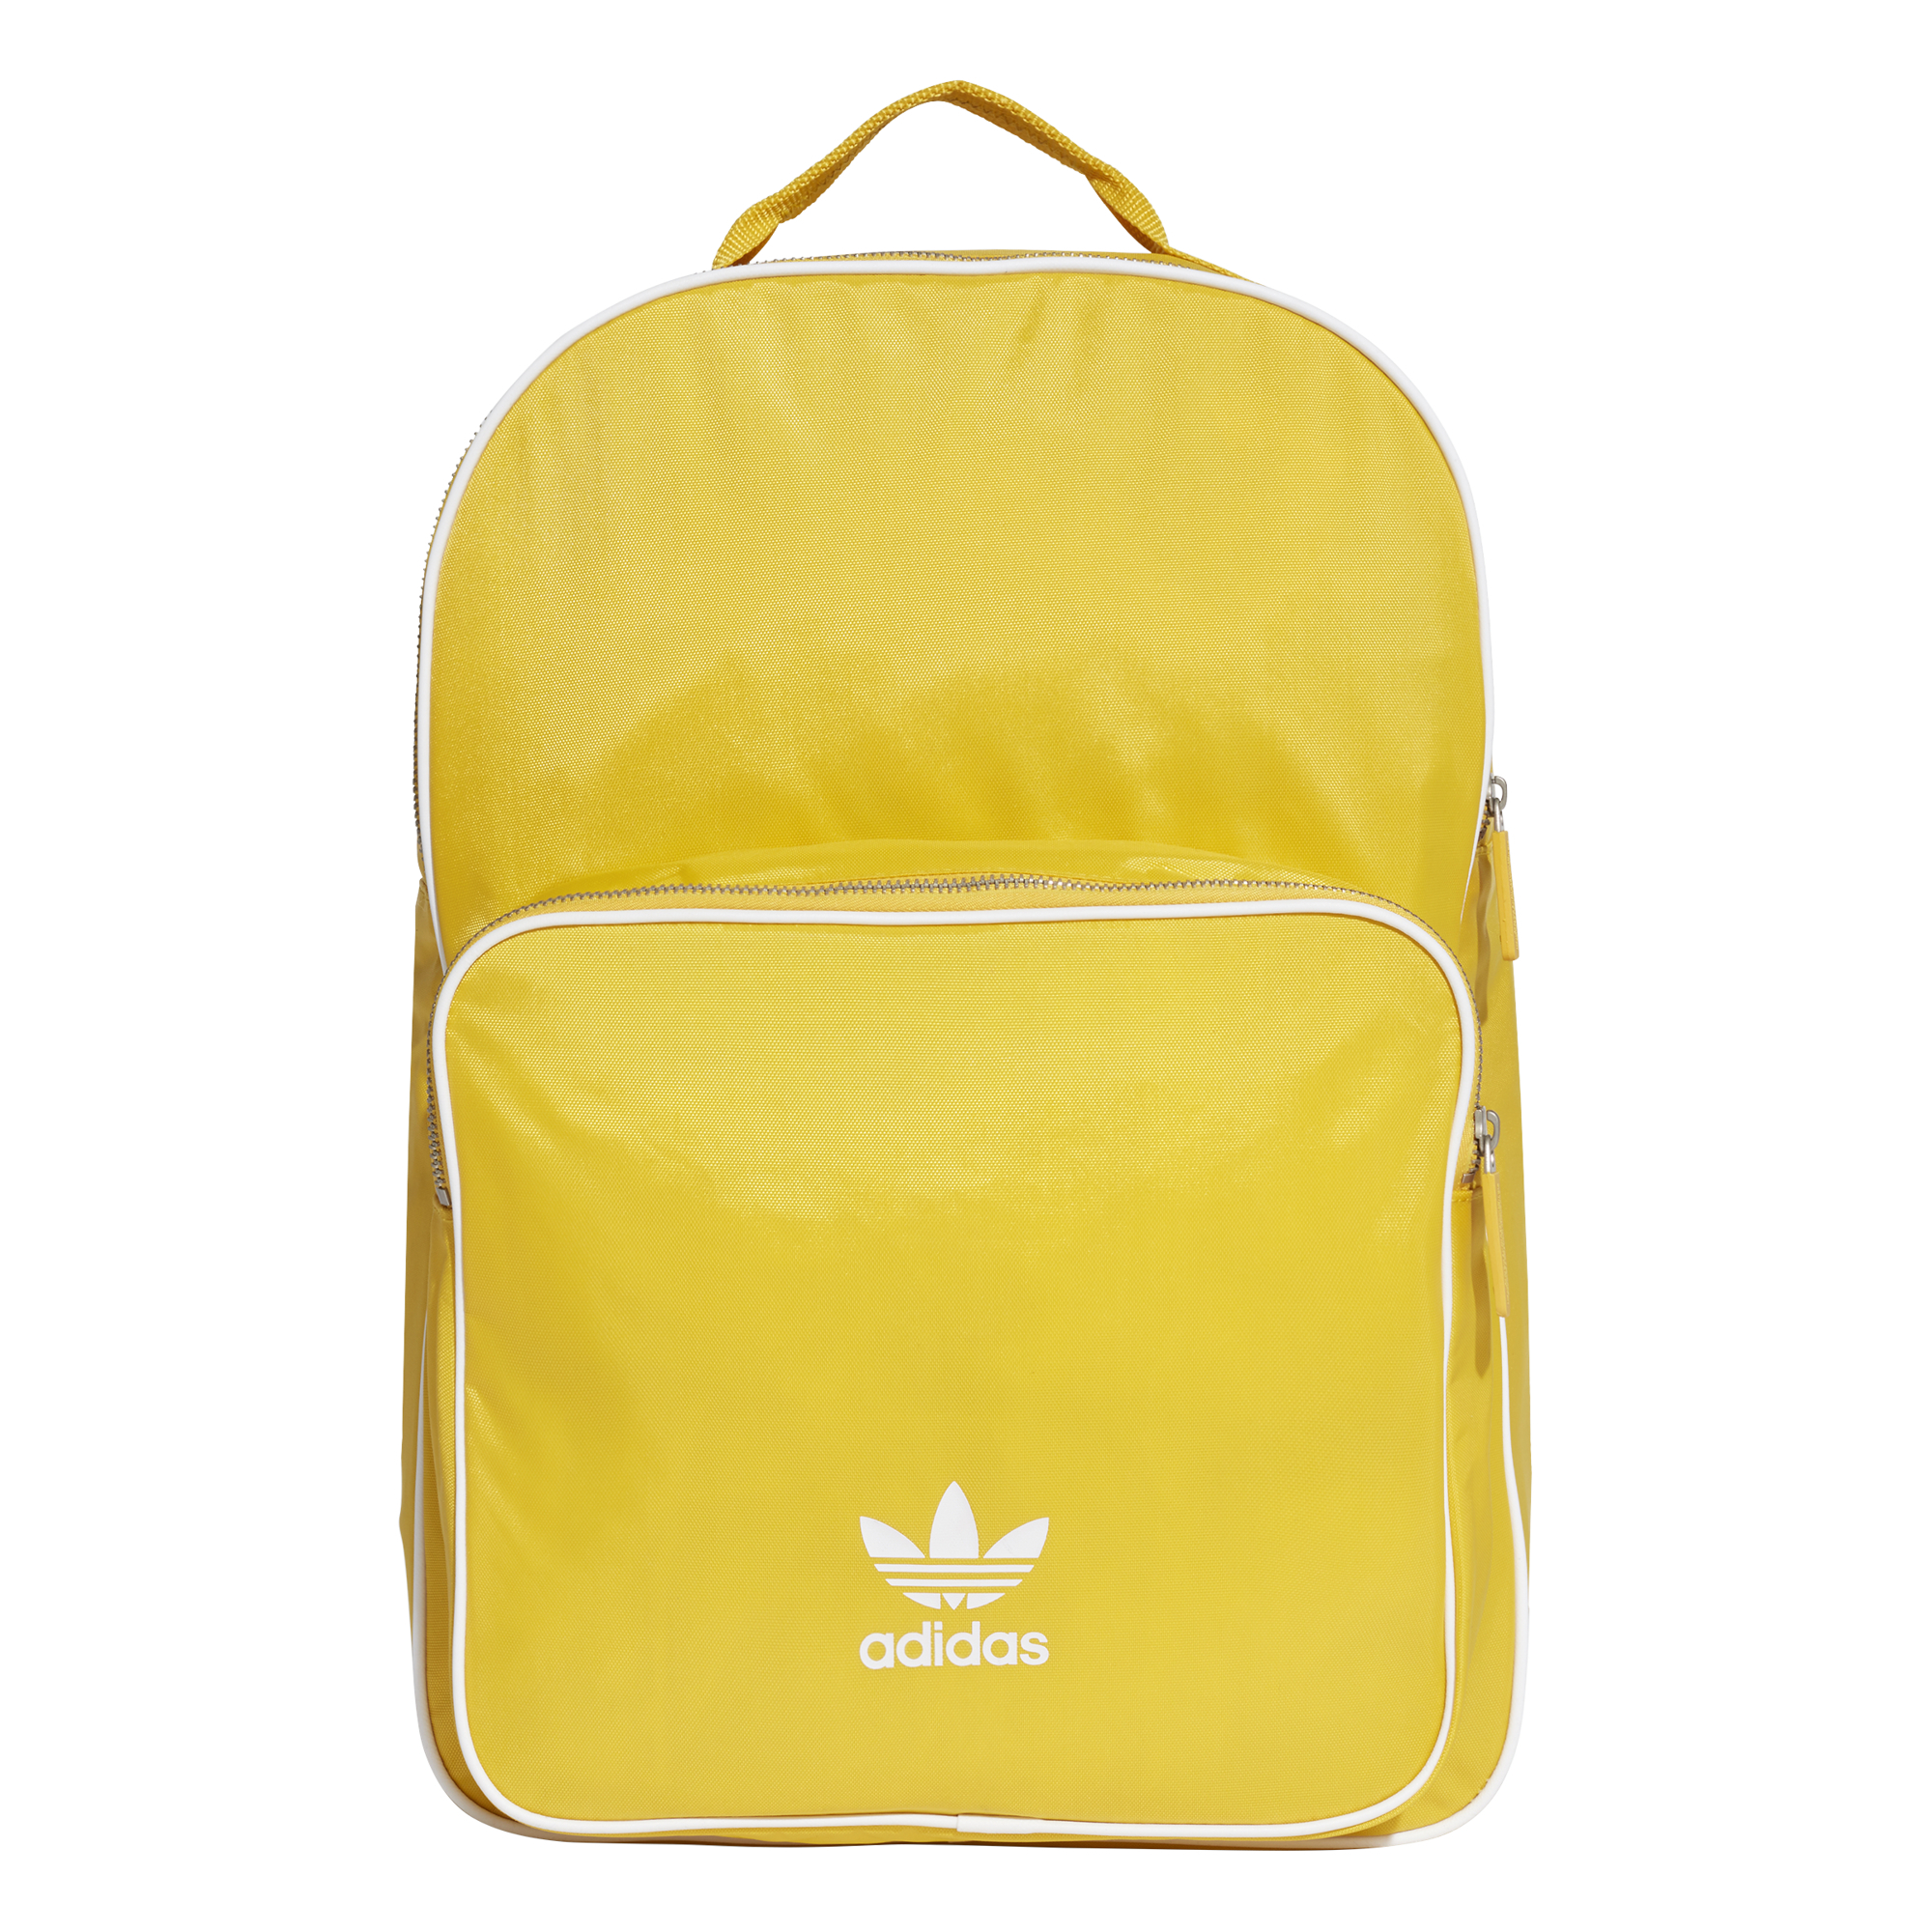 a49cf1a0ce5 Adidas Adicolor Classic Backpack Tribal Yellow - Boardvillage